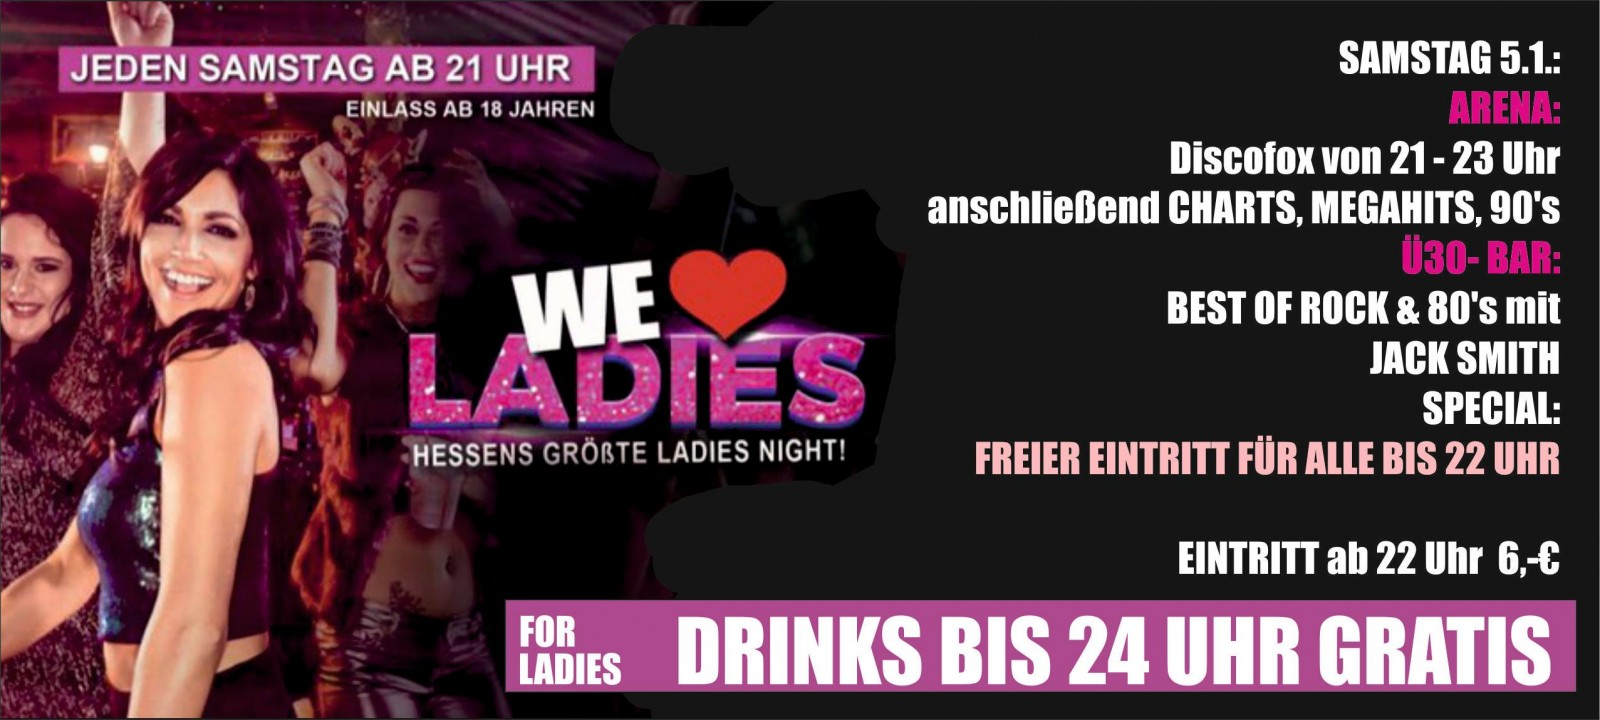 Ww-Terminator: We Love Ladies - DJ DNF, DJ Michael Steen - Nachtarena Treysa - Treysa